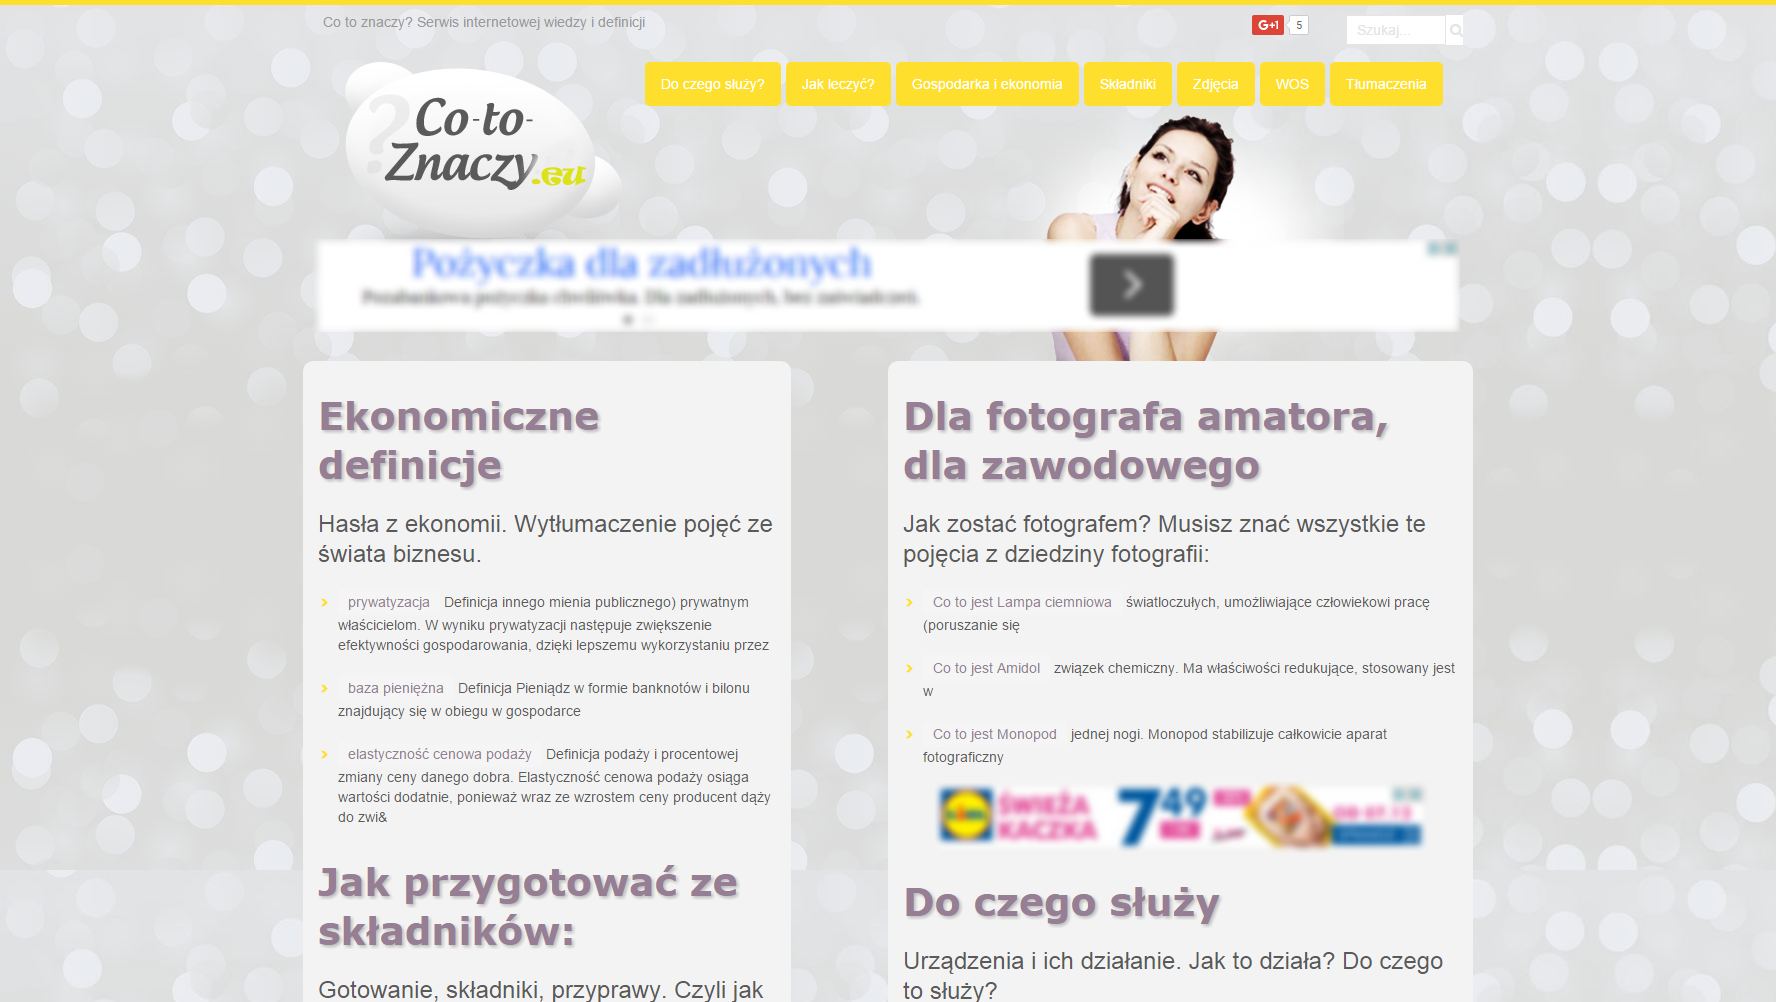 Project Co-To-Znaczy.eu